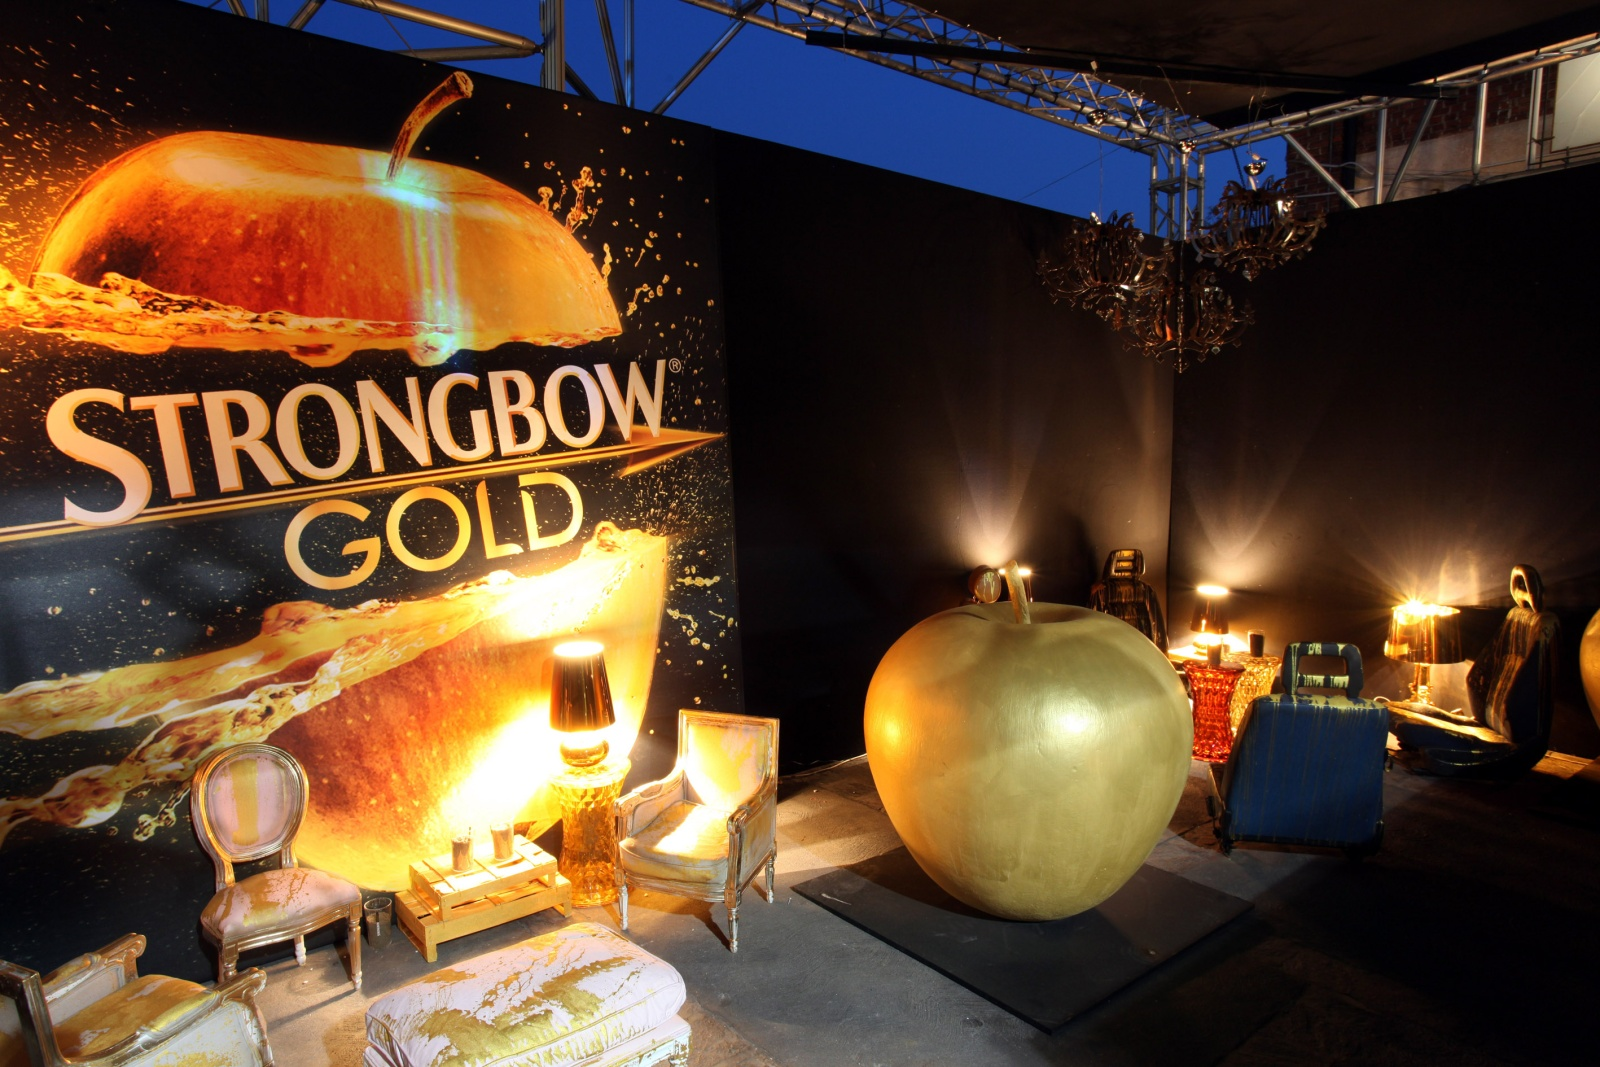 Haineken Strongbow Gold